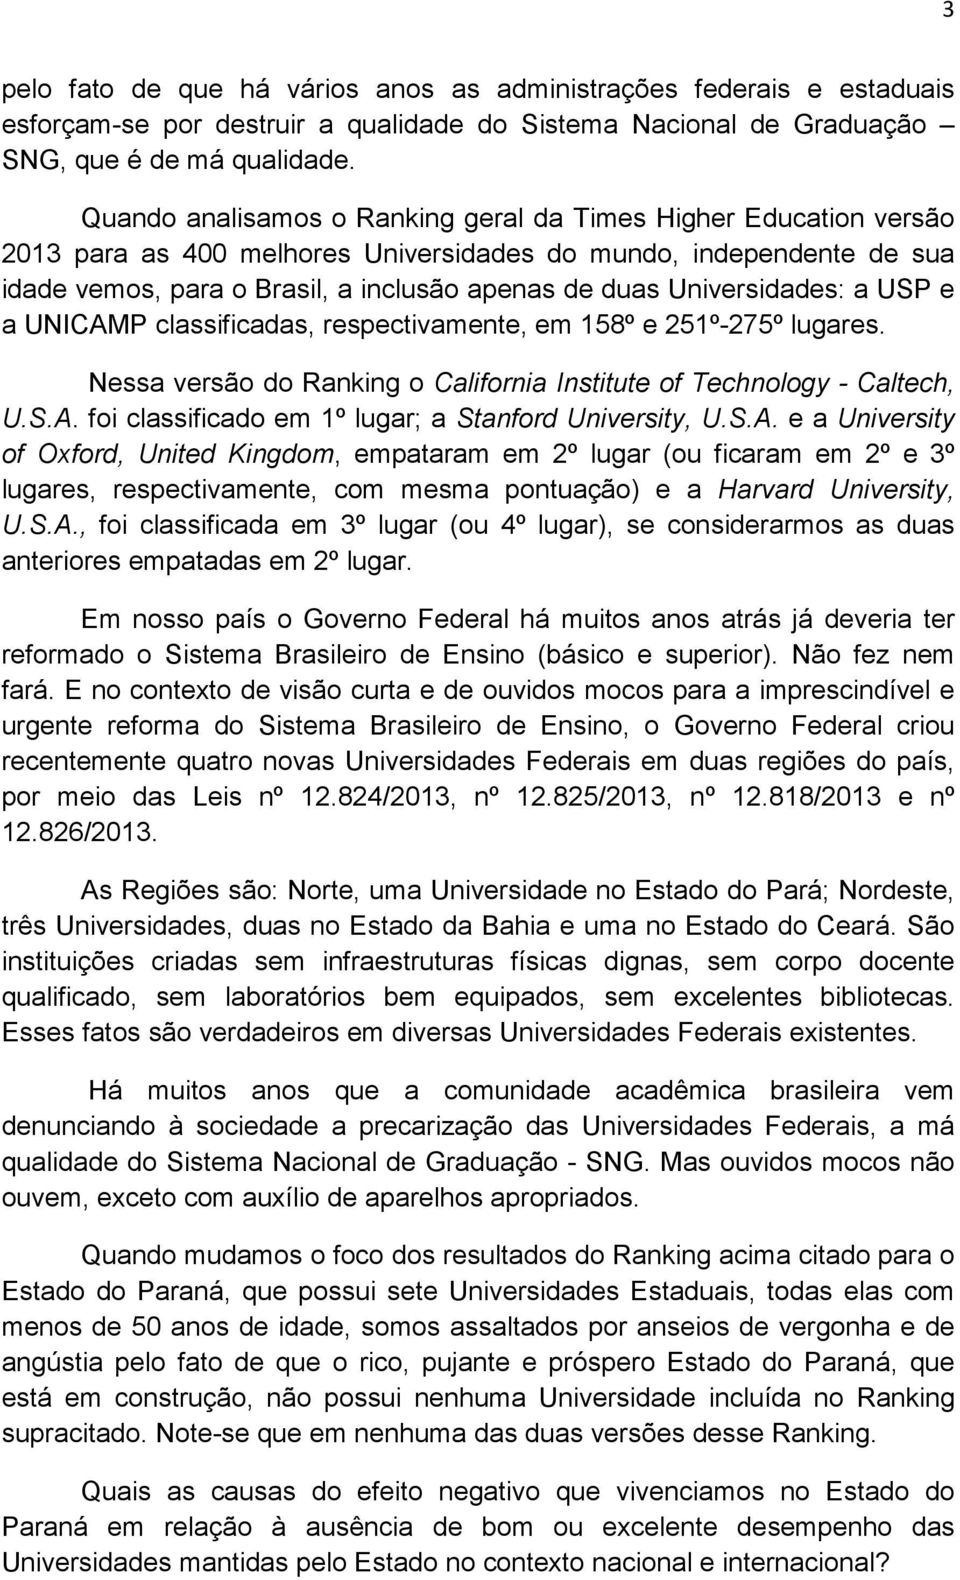 Universidades: a USP e a UNICAMP classificadas, respectivamente, em 158º e 251º-275º lugares. Nessa versão do Ranking o California Institute of Technology - Caltech, U.S.A. foi classificado em 1º lugar; a Stanford University, U.